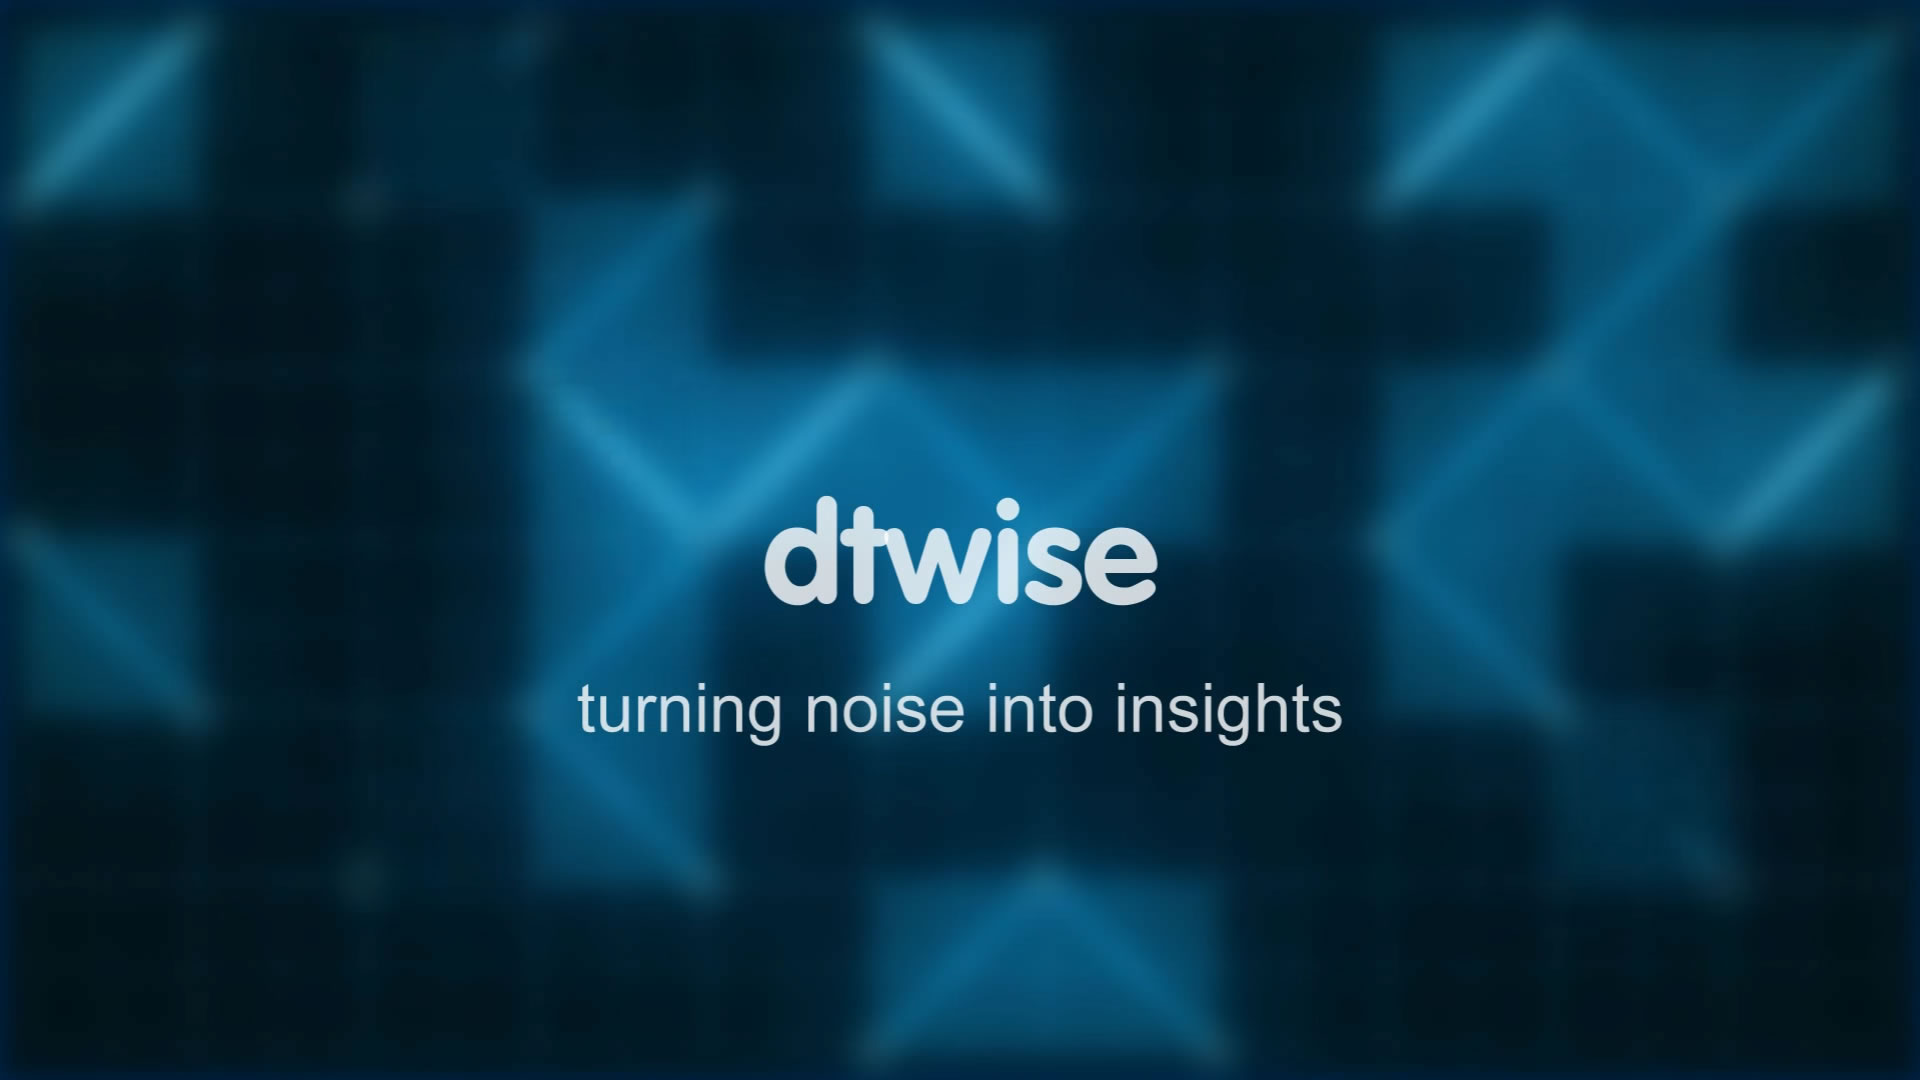 DTWISE Turning Noise into Insights Company and Products Video Placeholder